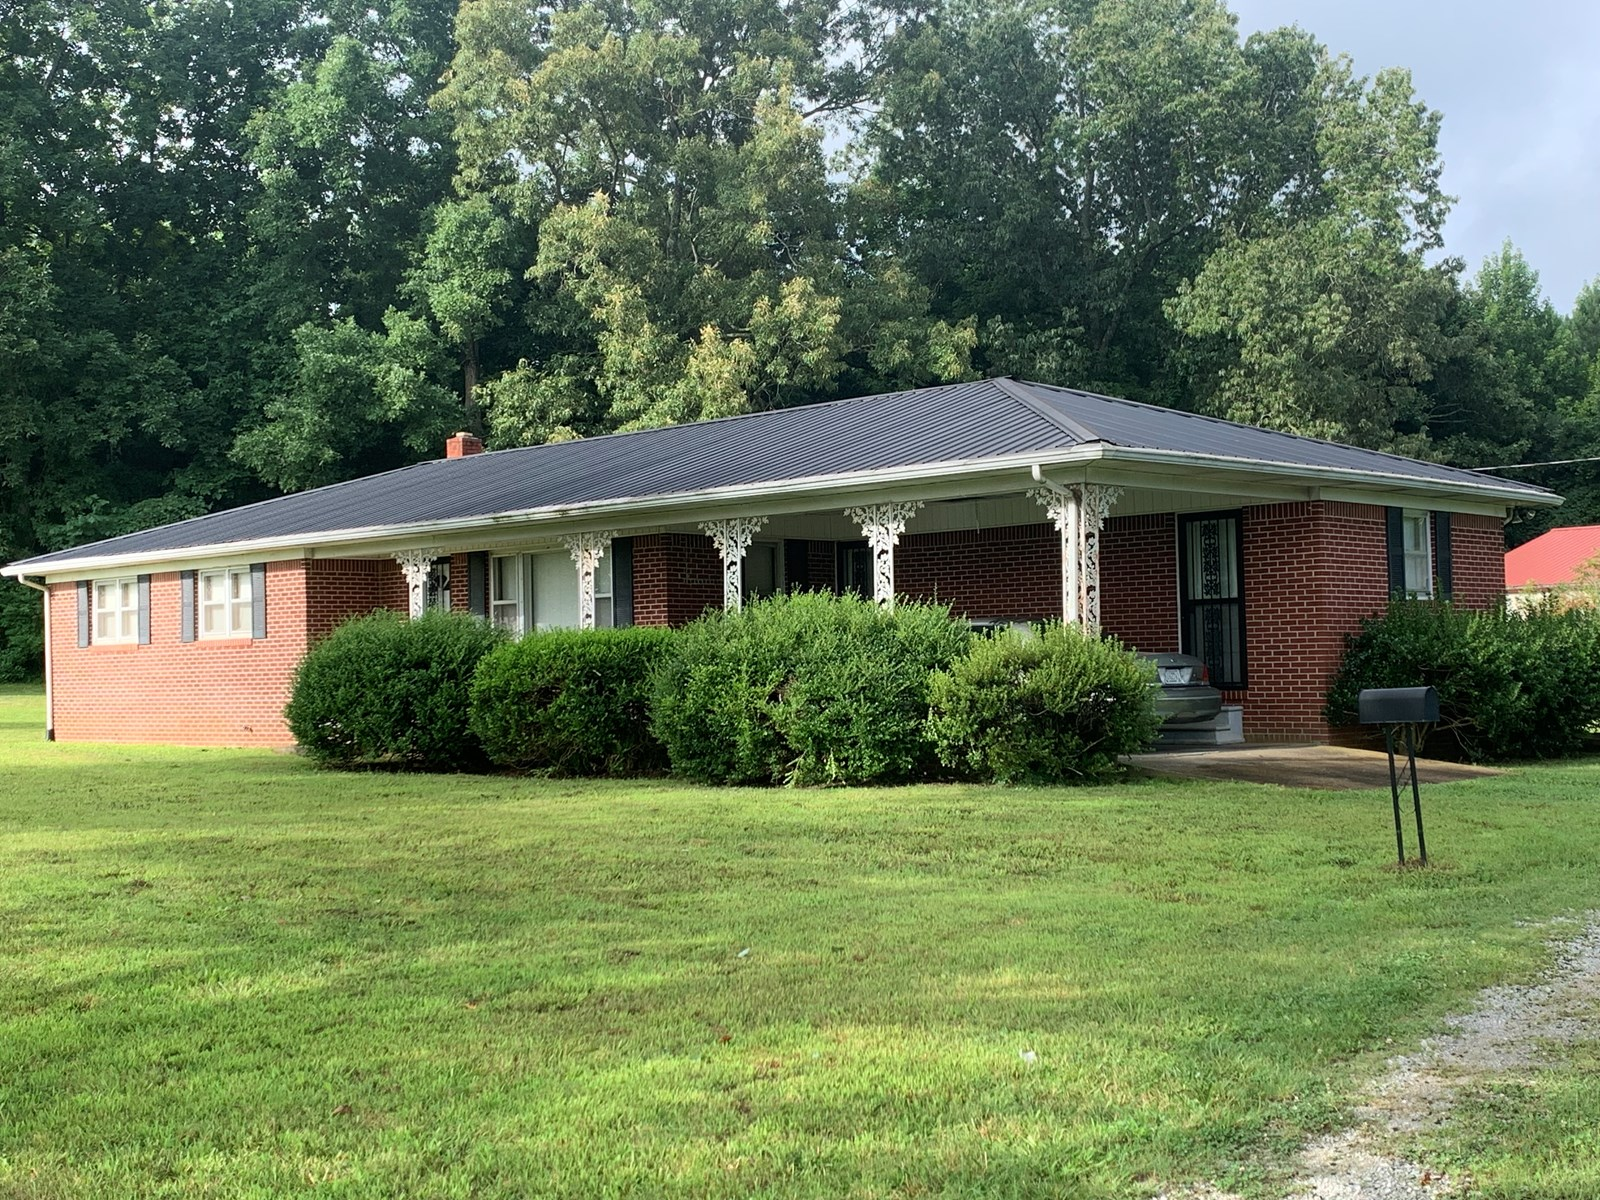 CAMDEN TENNESSEE HOME FOR SALE, BENTON COUNTY FOR SALE